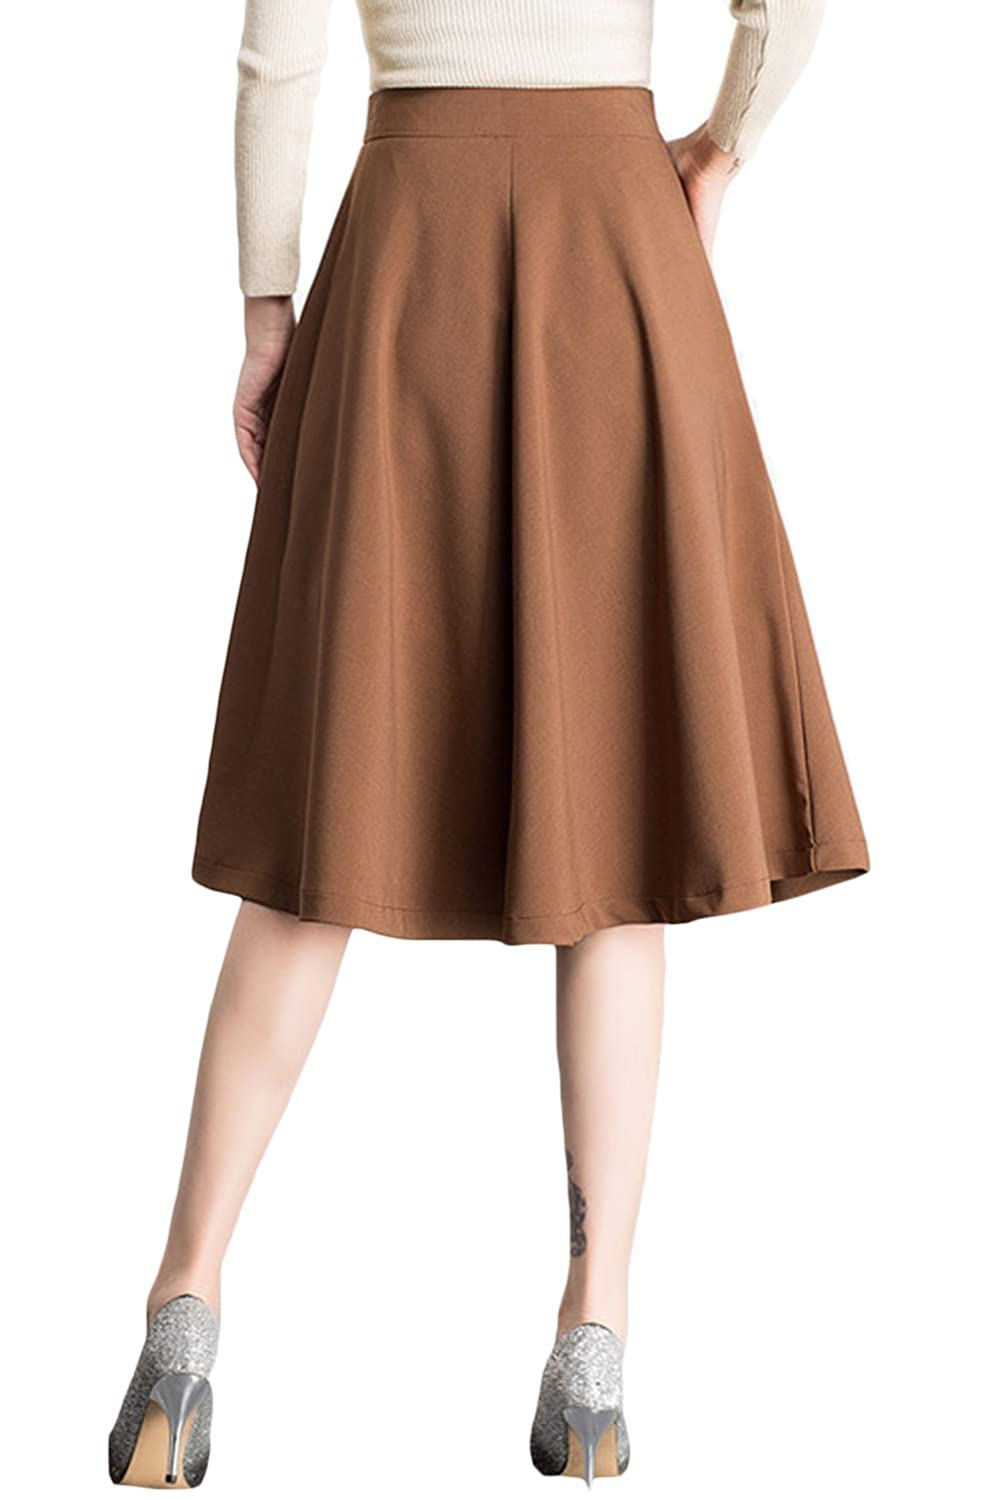 e613282f4b Womens Midi Skirt Casual High Waist A Line Pleated Skater Trumpet Skirt at  Amazon Women's Clothing store: